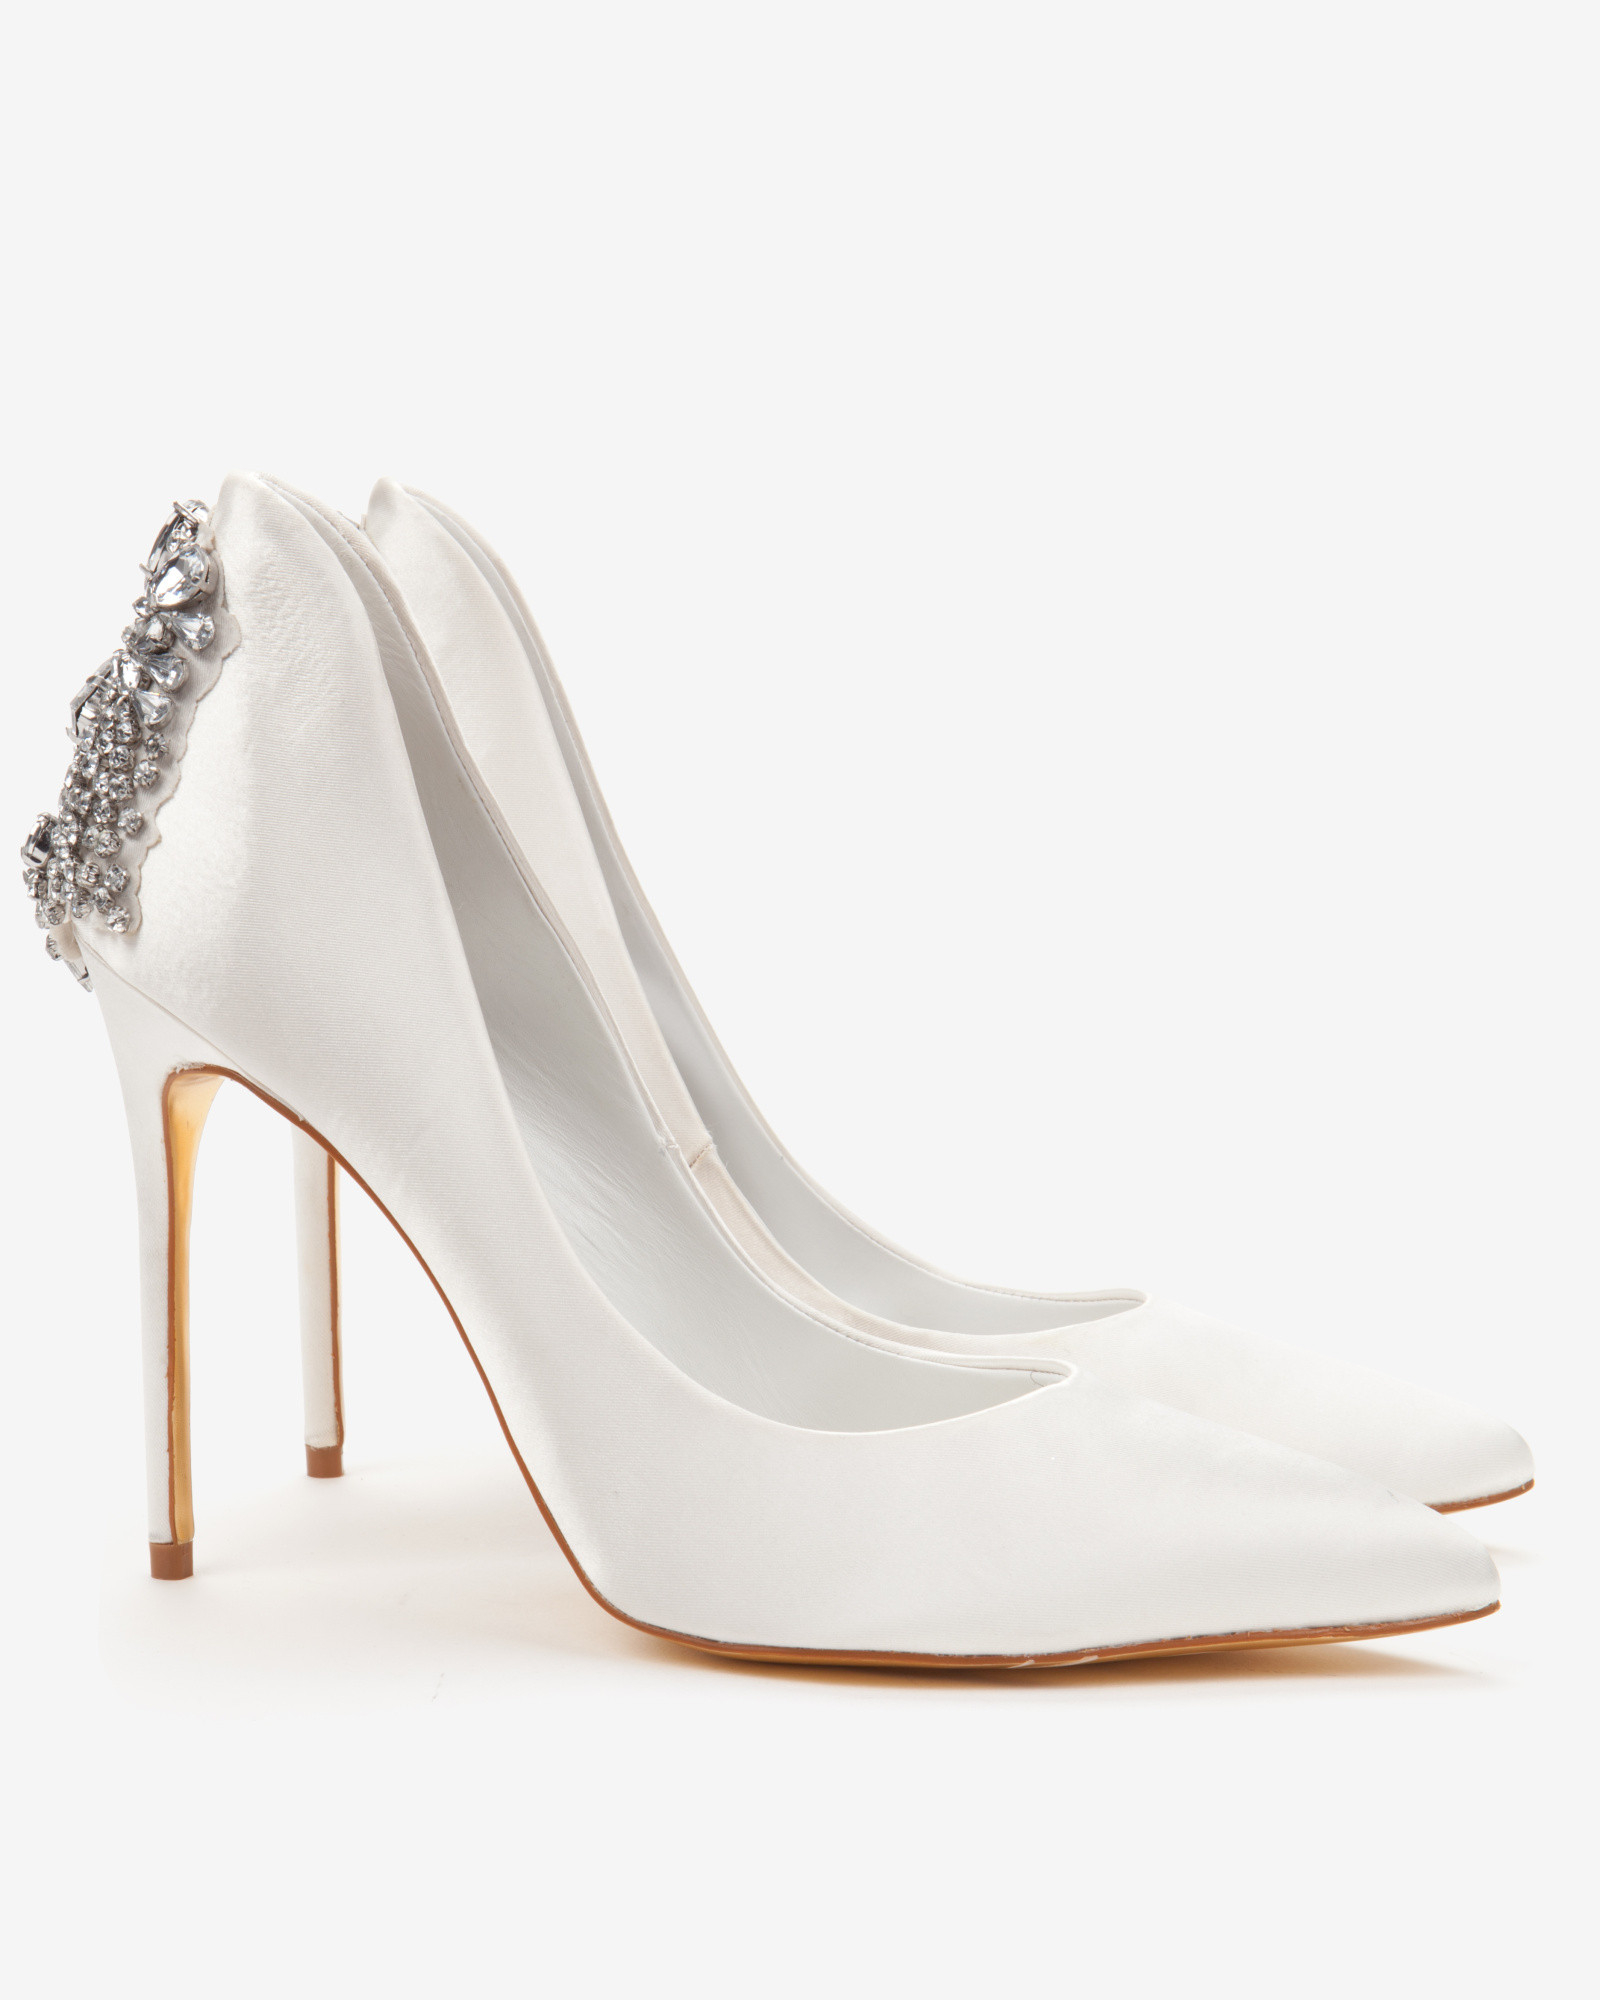 f97330fed0c Ted Baker Embellished Court Shoes in White - Lyst